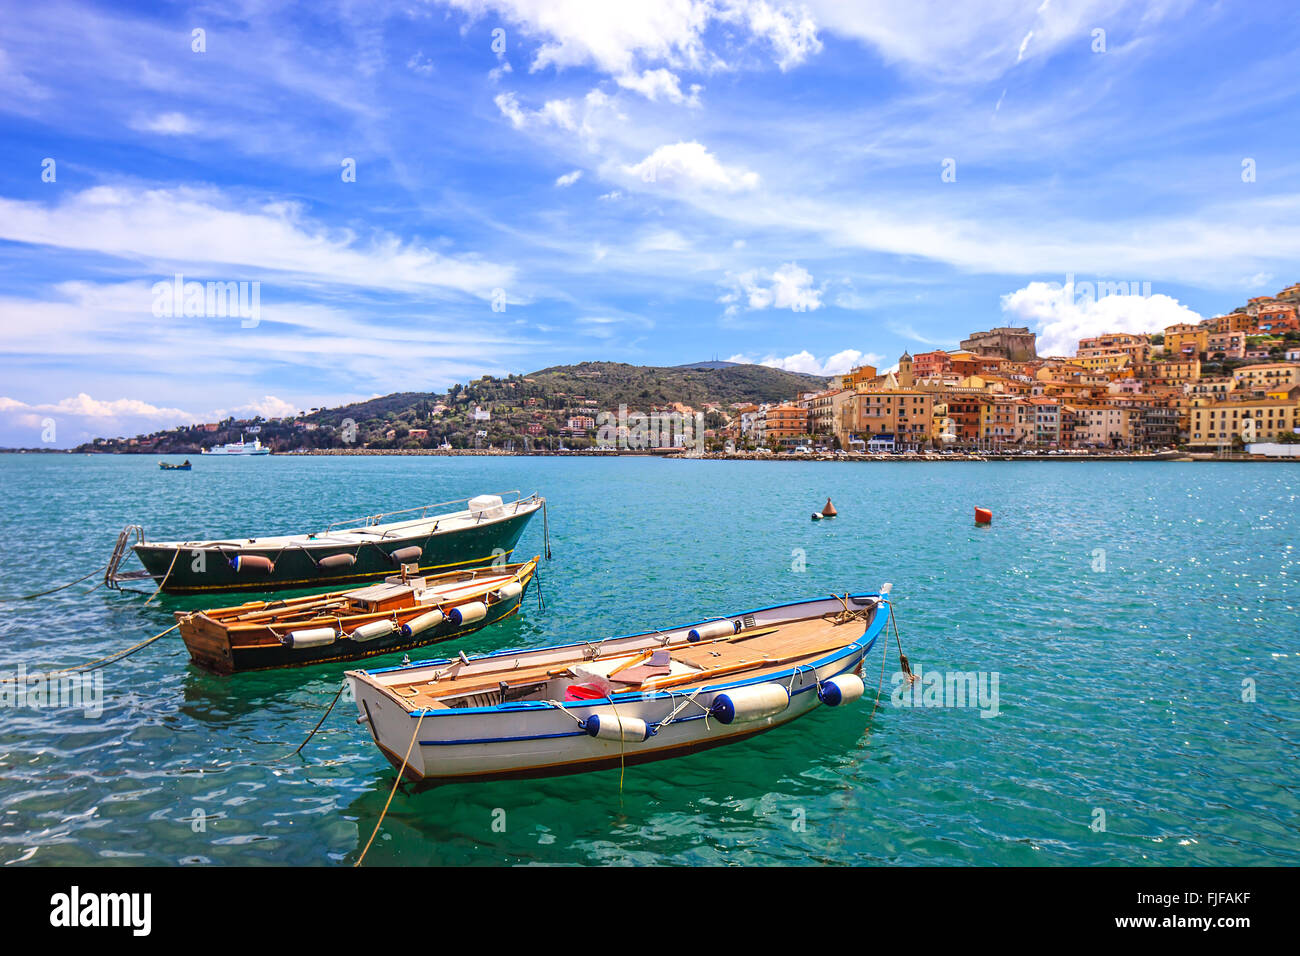 Wooden small old boats in Porto Santo Stefano seafront, italian travel destination. Monte Argentario, Tuscany, Italy. - Stock Image